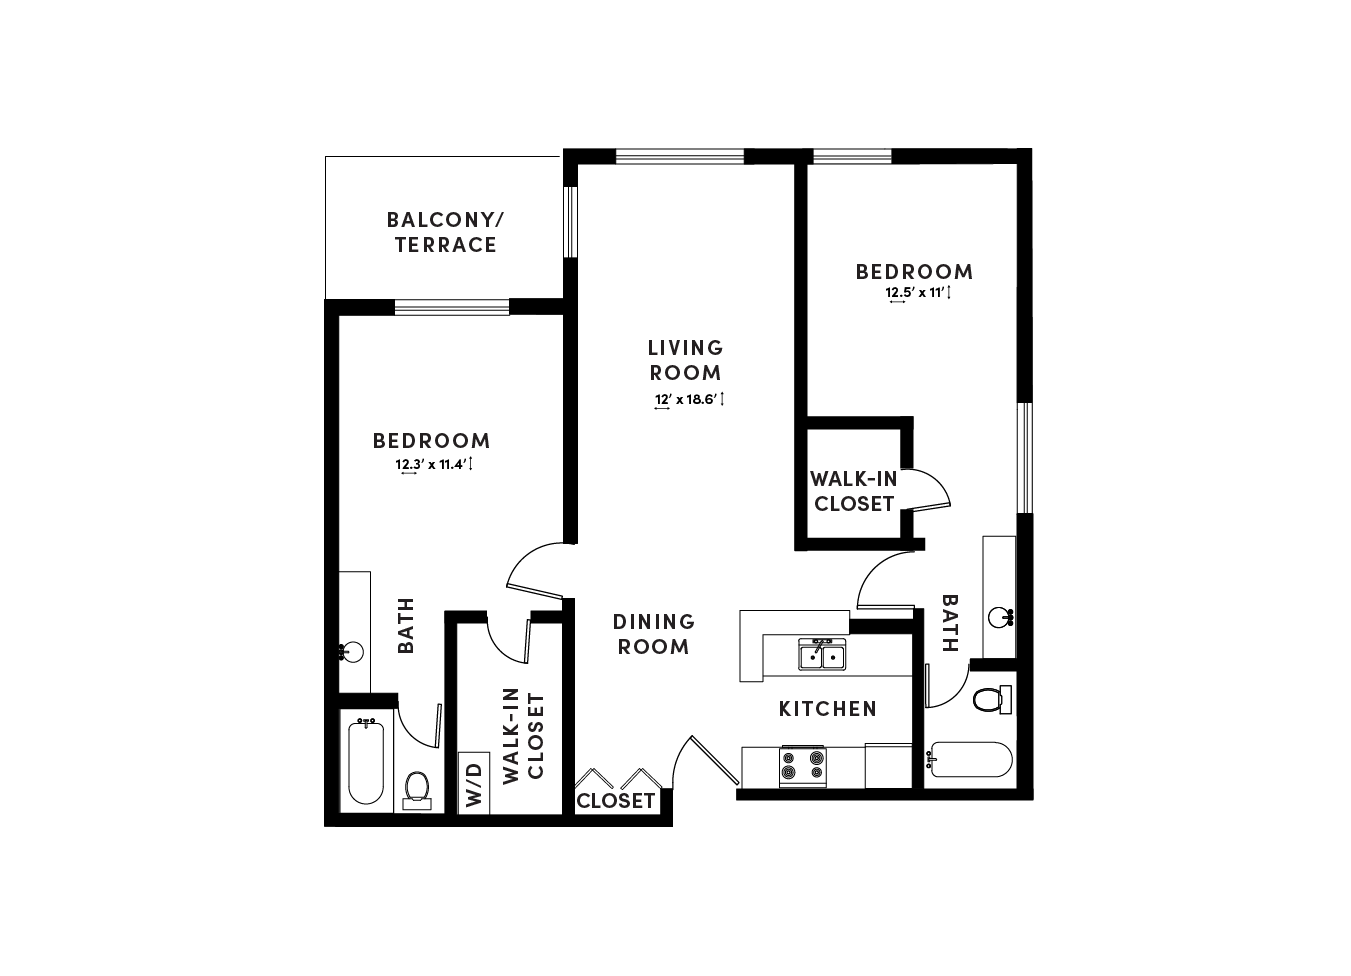 floor plan image of apartment_D102